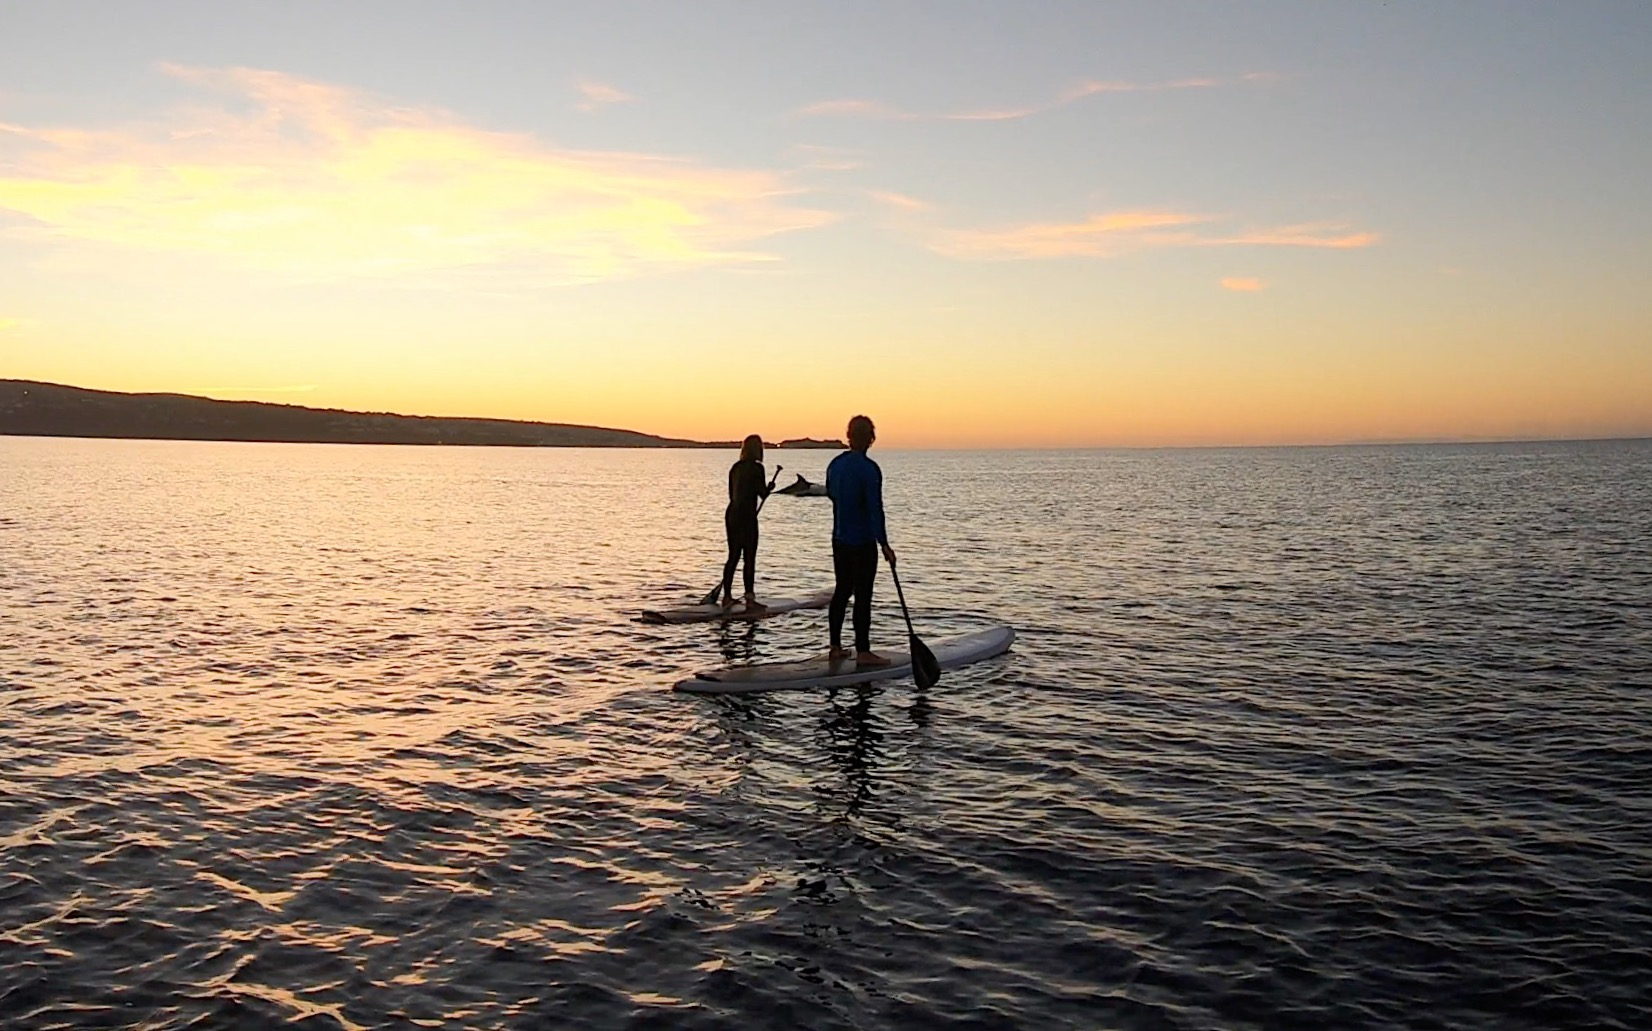 sunset SUP with dolphins